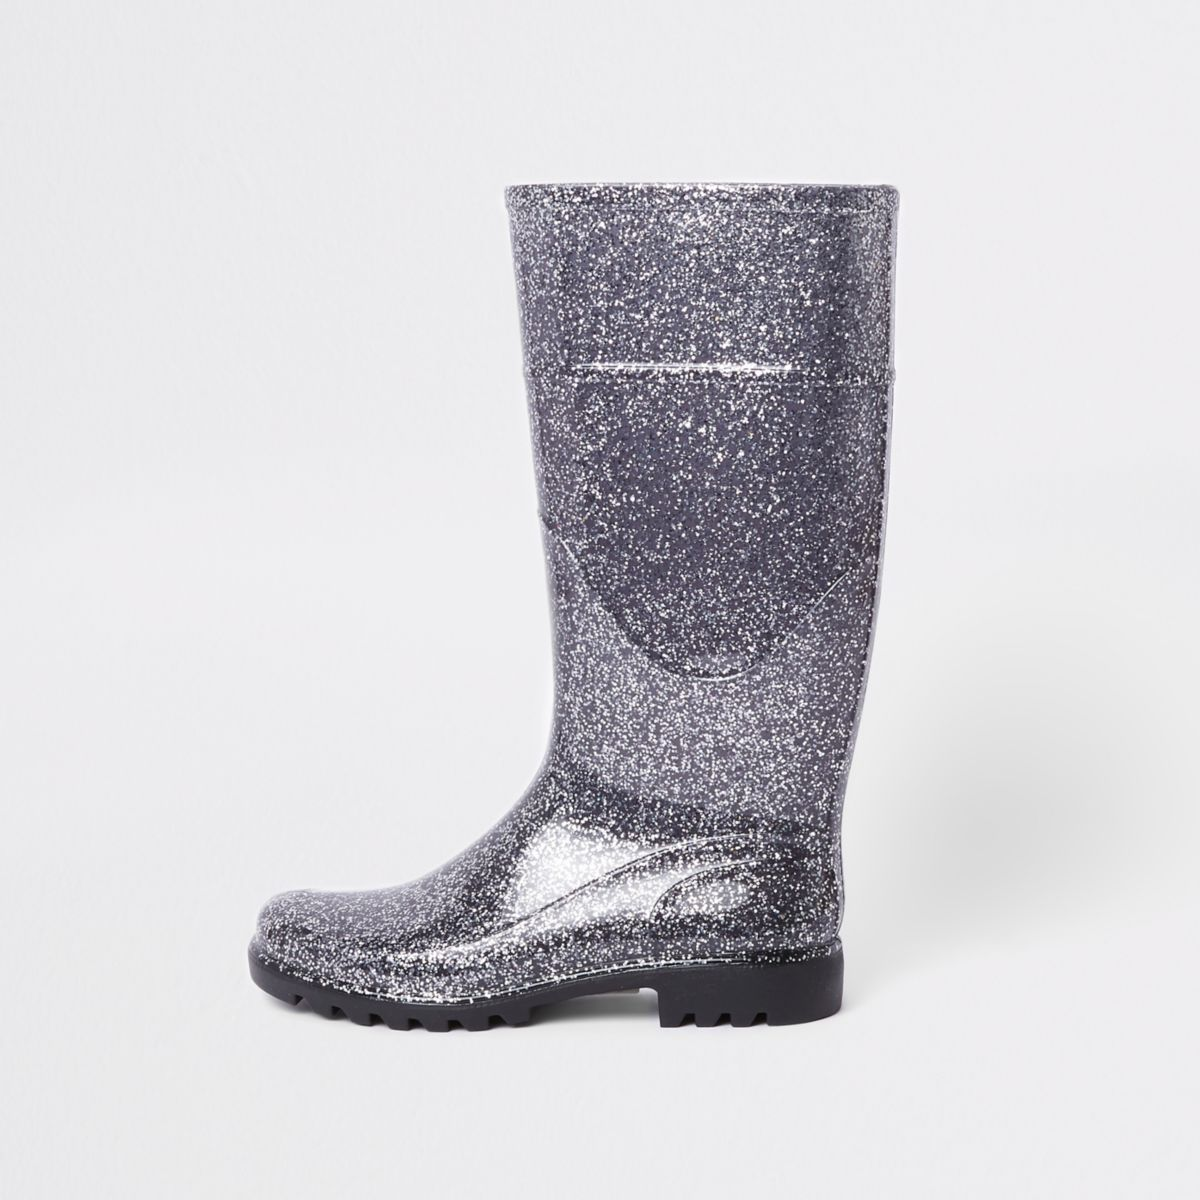 Silver glitter wellie boots